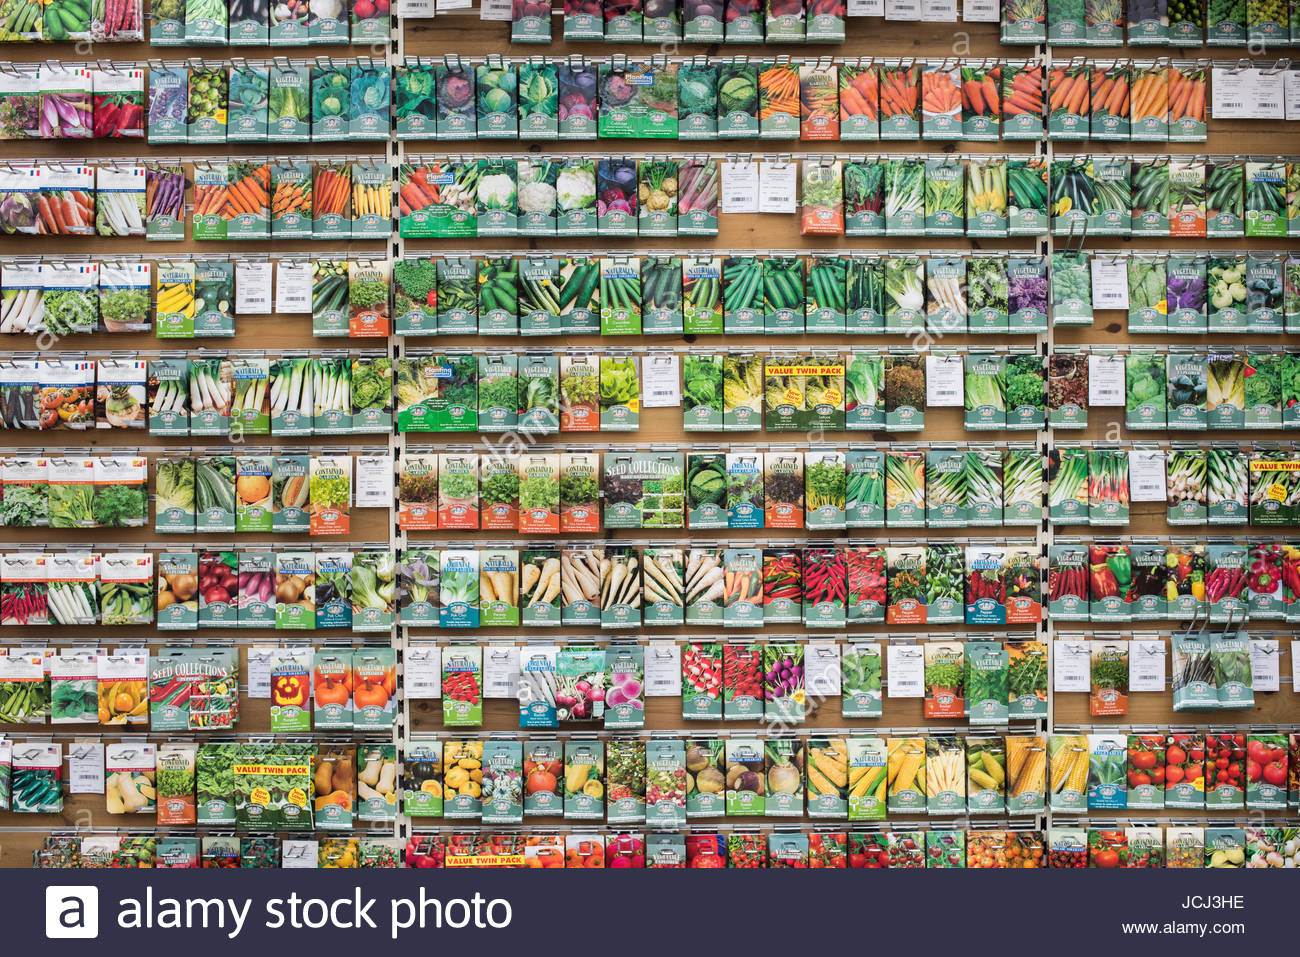 vegetable-seed-packets-on-display-in-a-garden-centre-uk-JCJ3HE.jpg